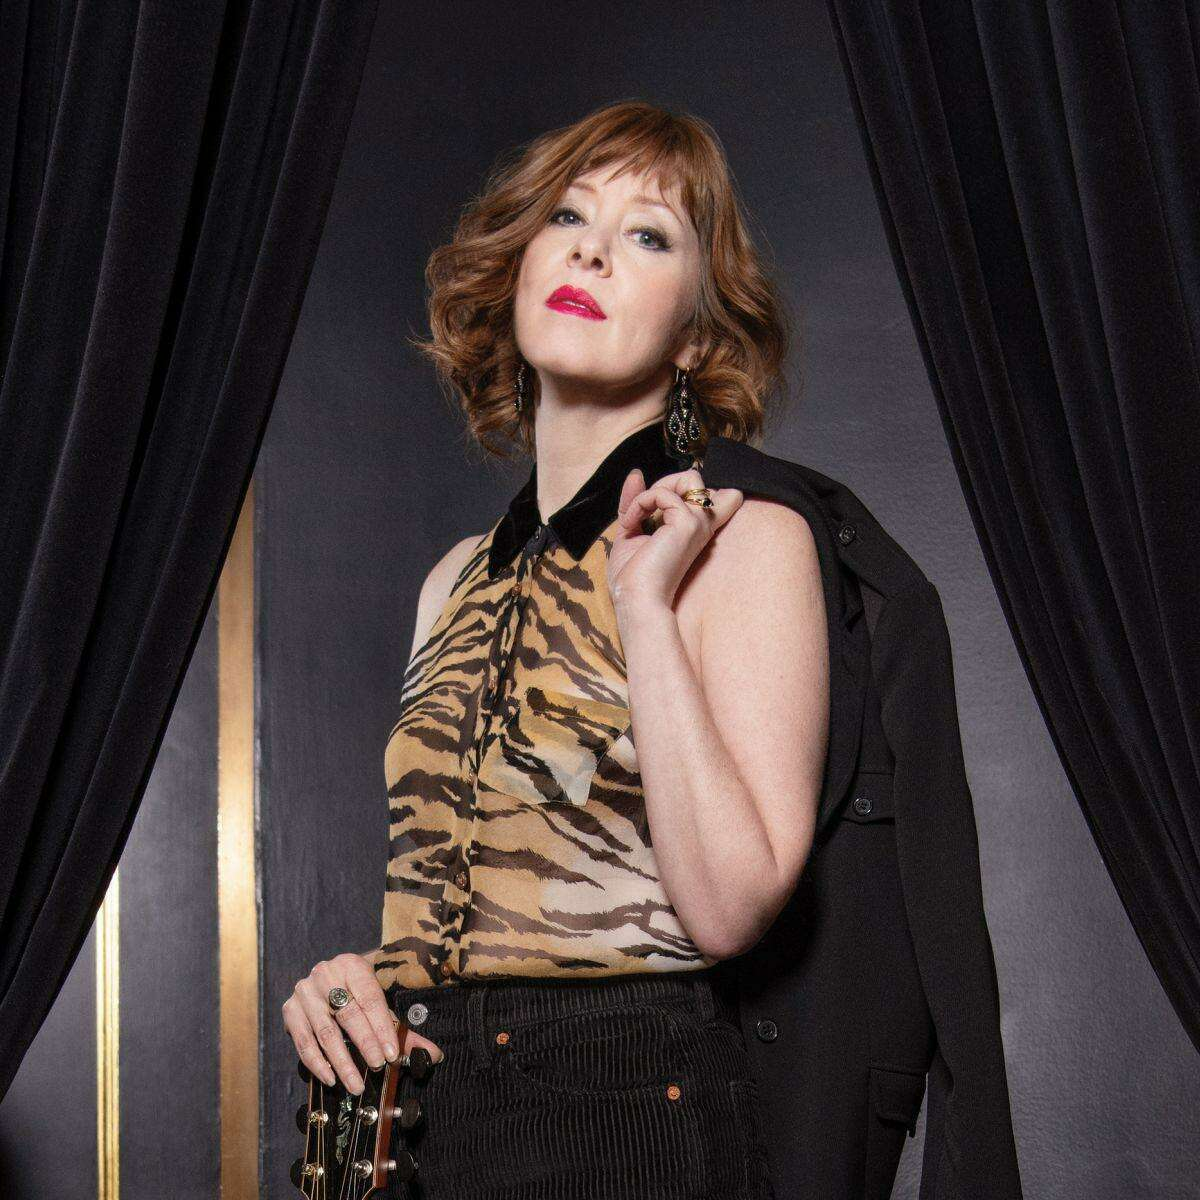 Grammy Award winner Suzanne Vega is set to perform Aug. 21 at the Ridgefield Playhouse.